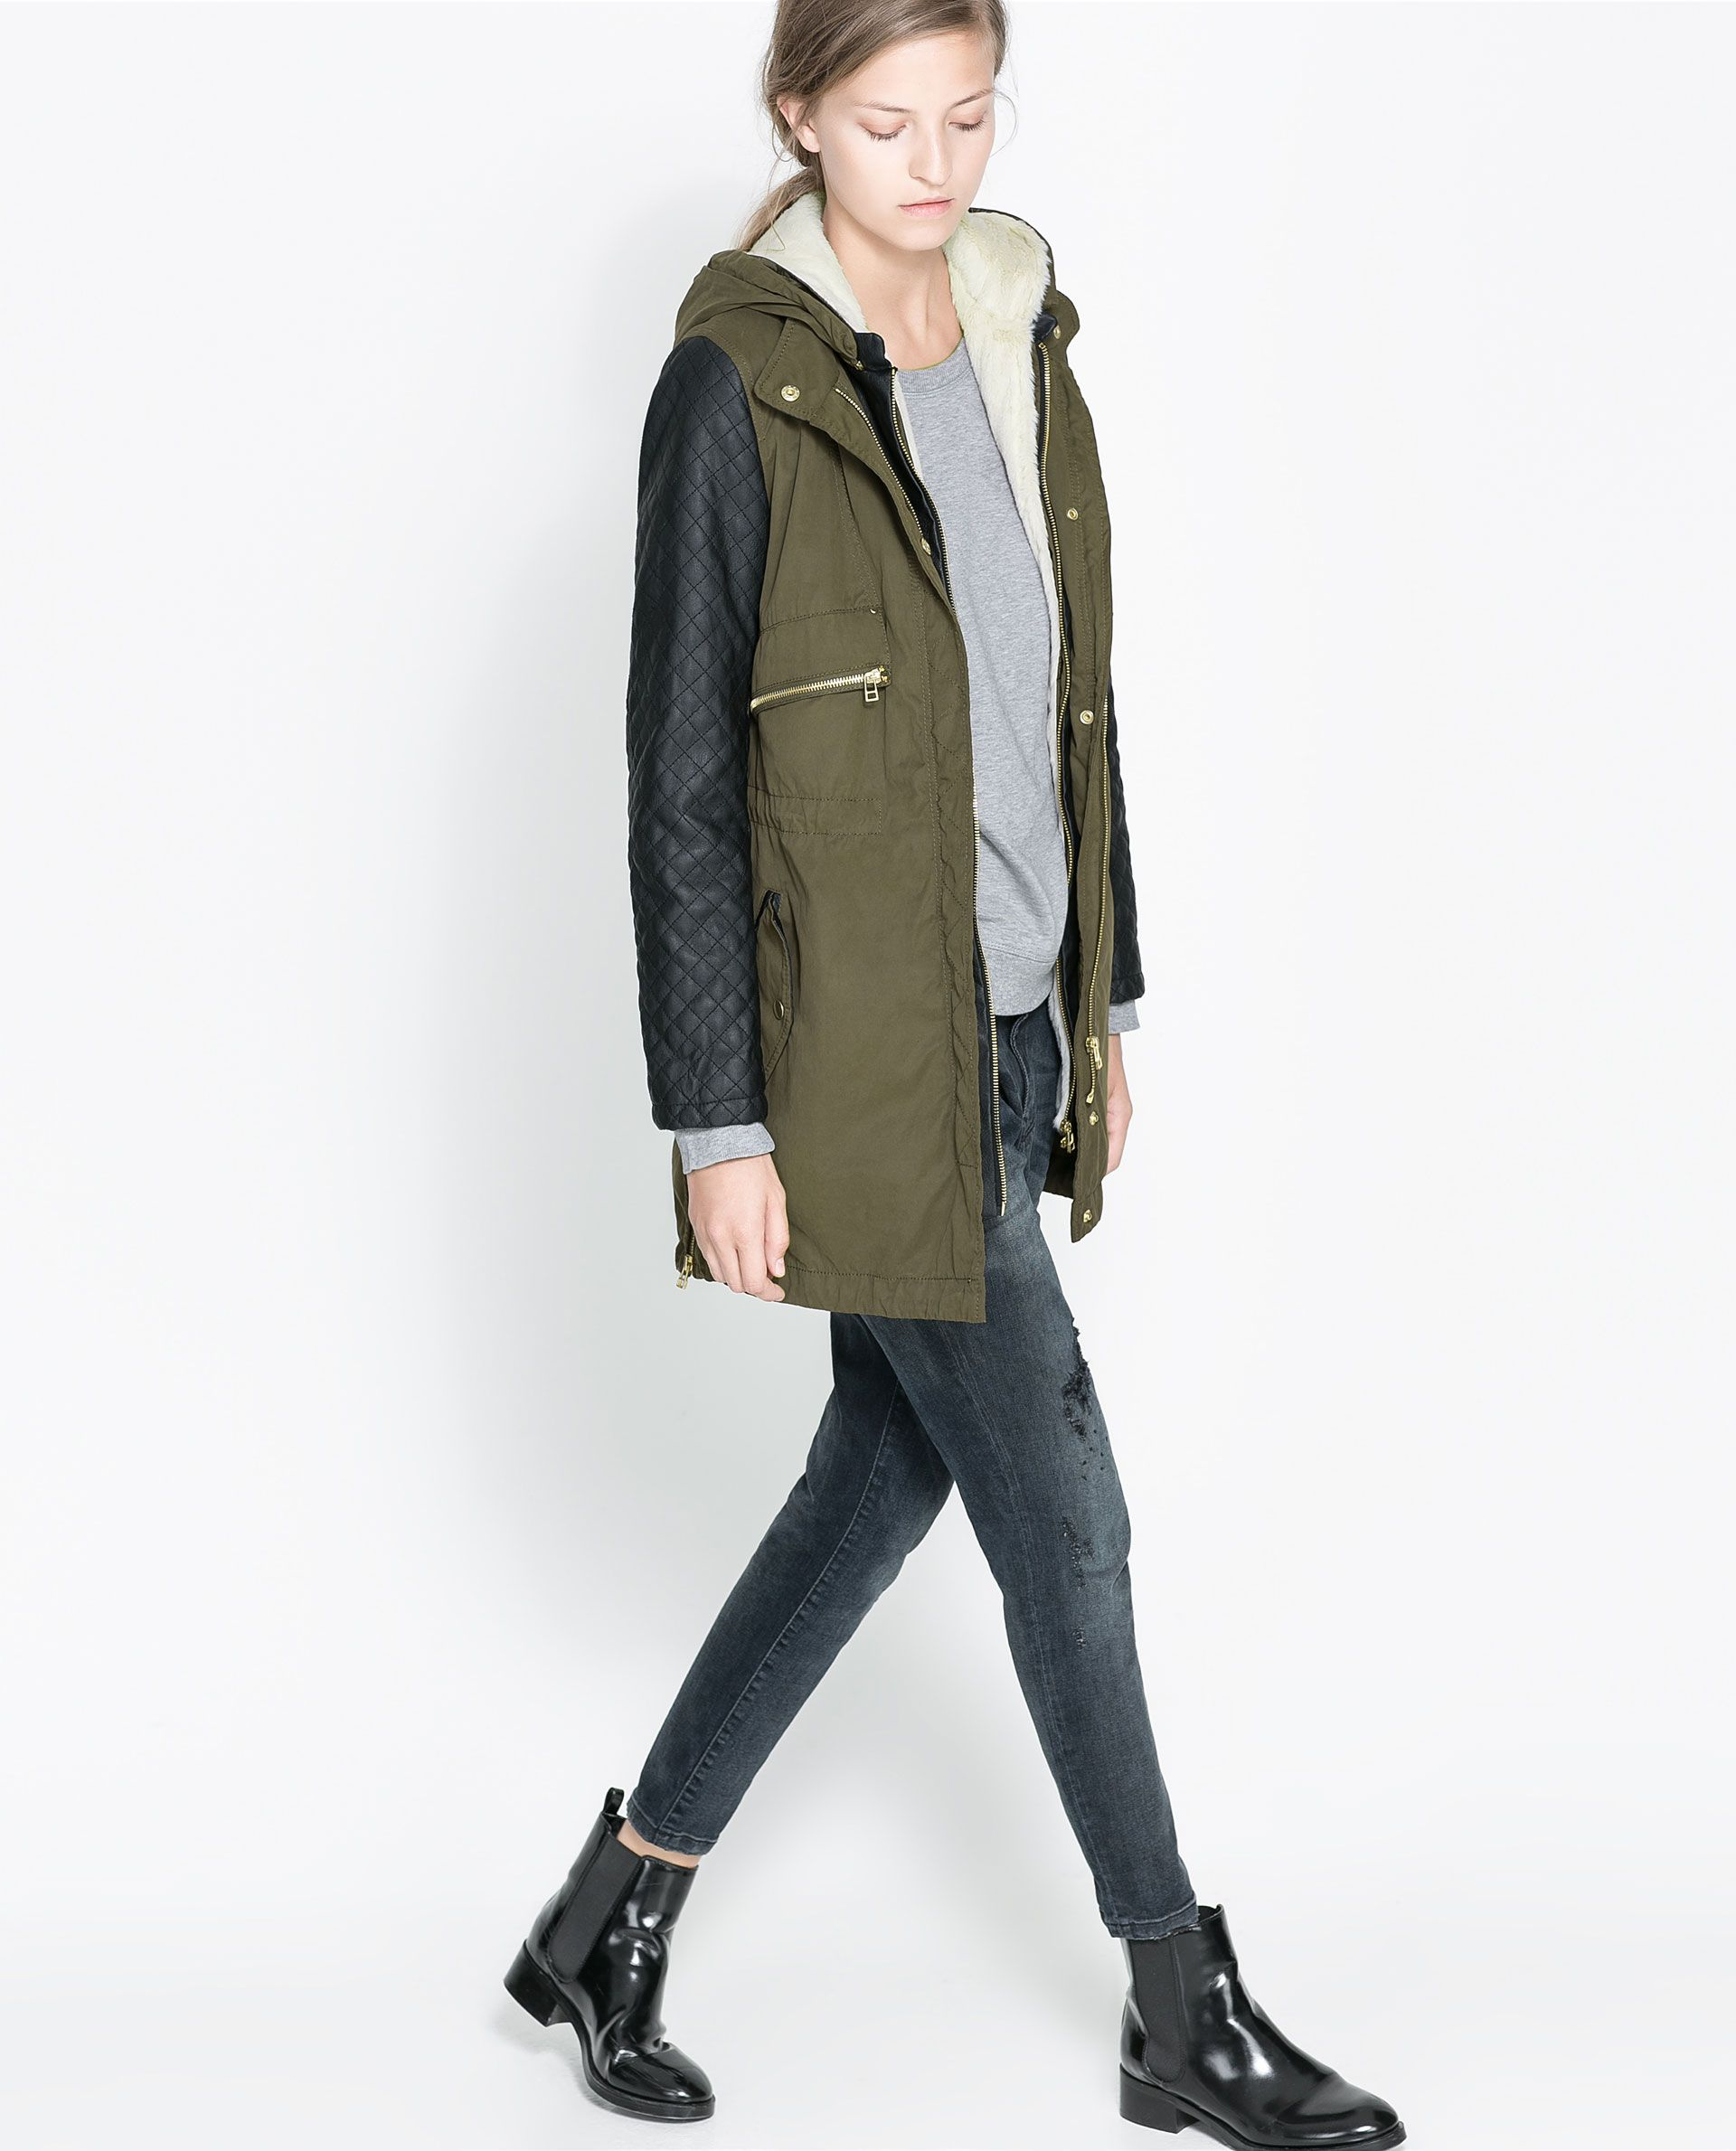 COMBINATION PARKA WITH FAUX LEATHER SLEEVES - Coats - WOMAN | ZARA ...